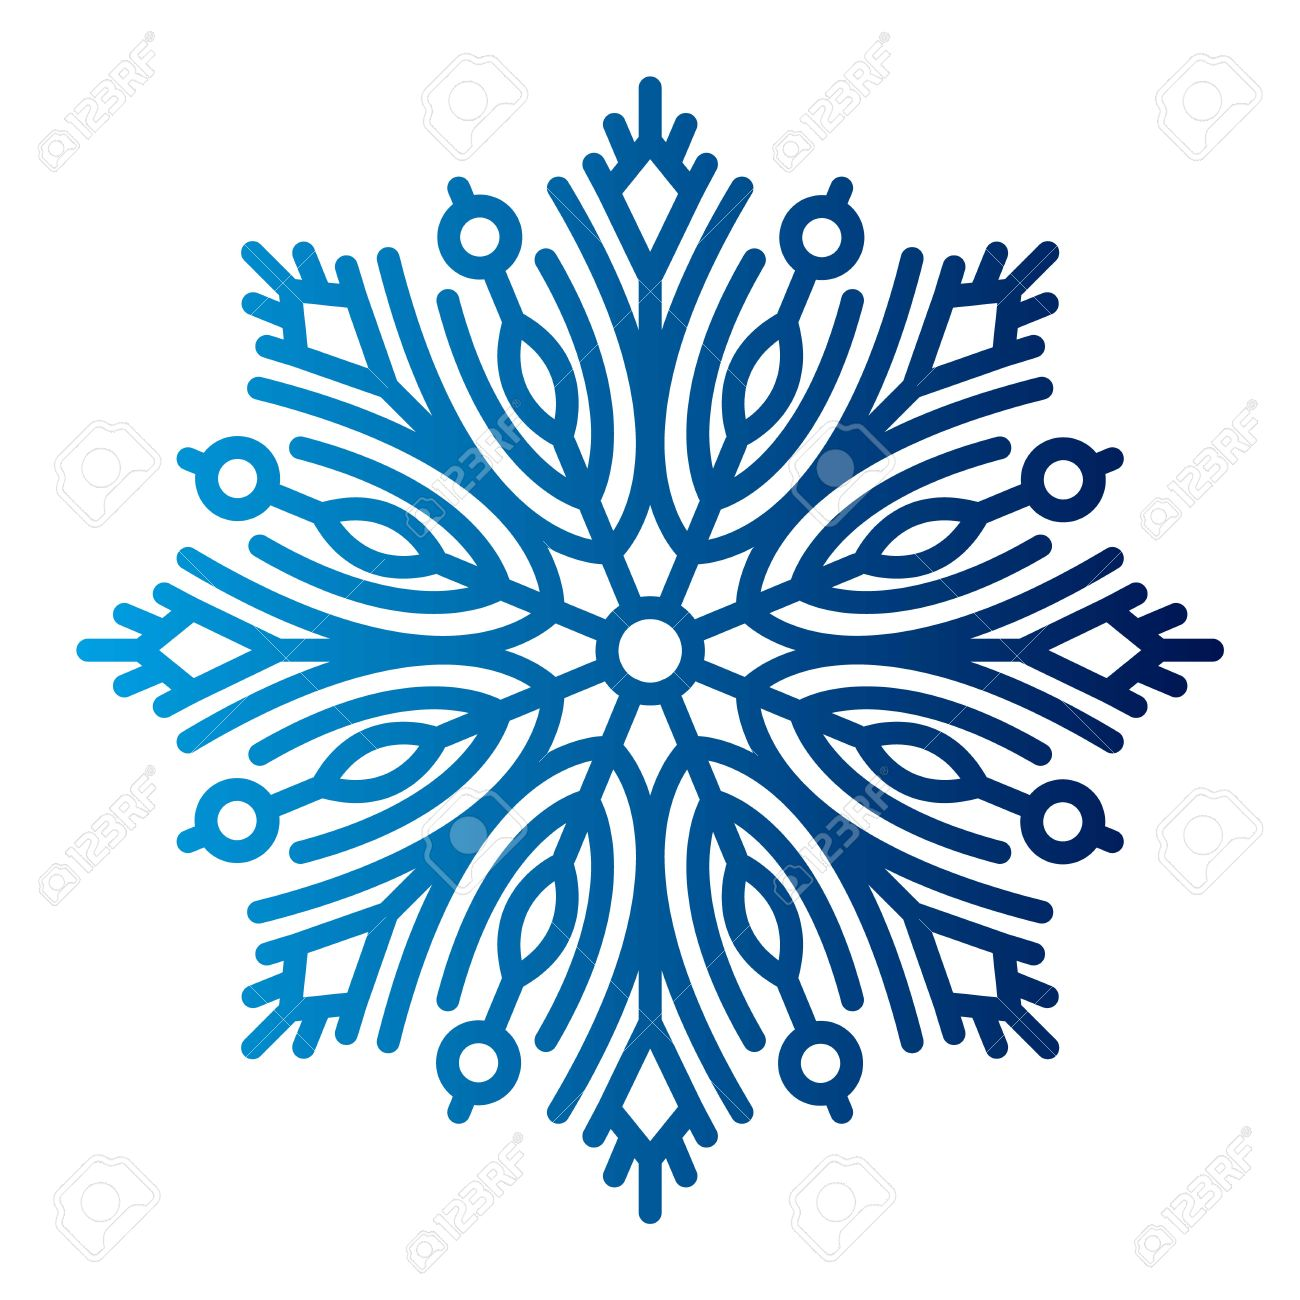 snowflake vector illustration and season nature winter sign symbol rh 123rf com white snowflake vector art Snowflake Clip Art SVG